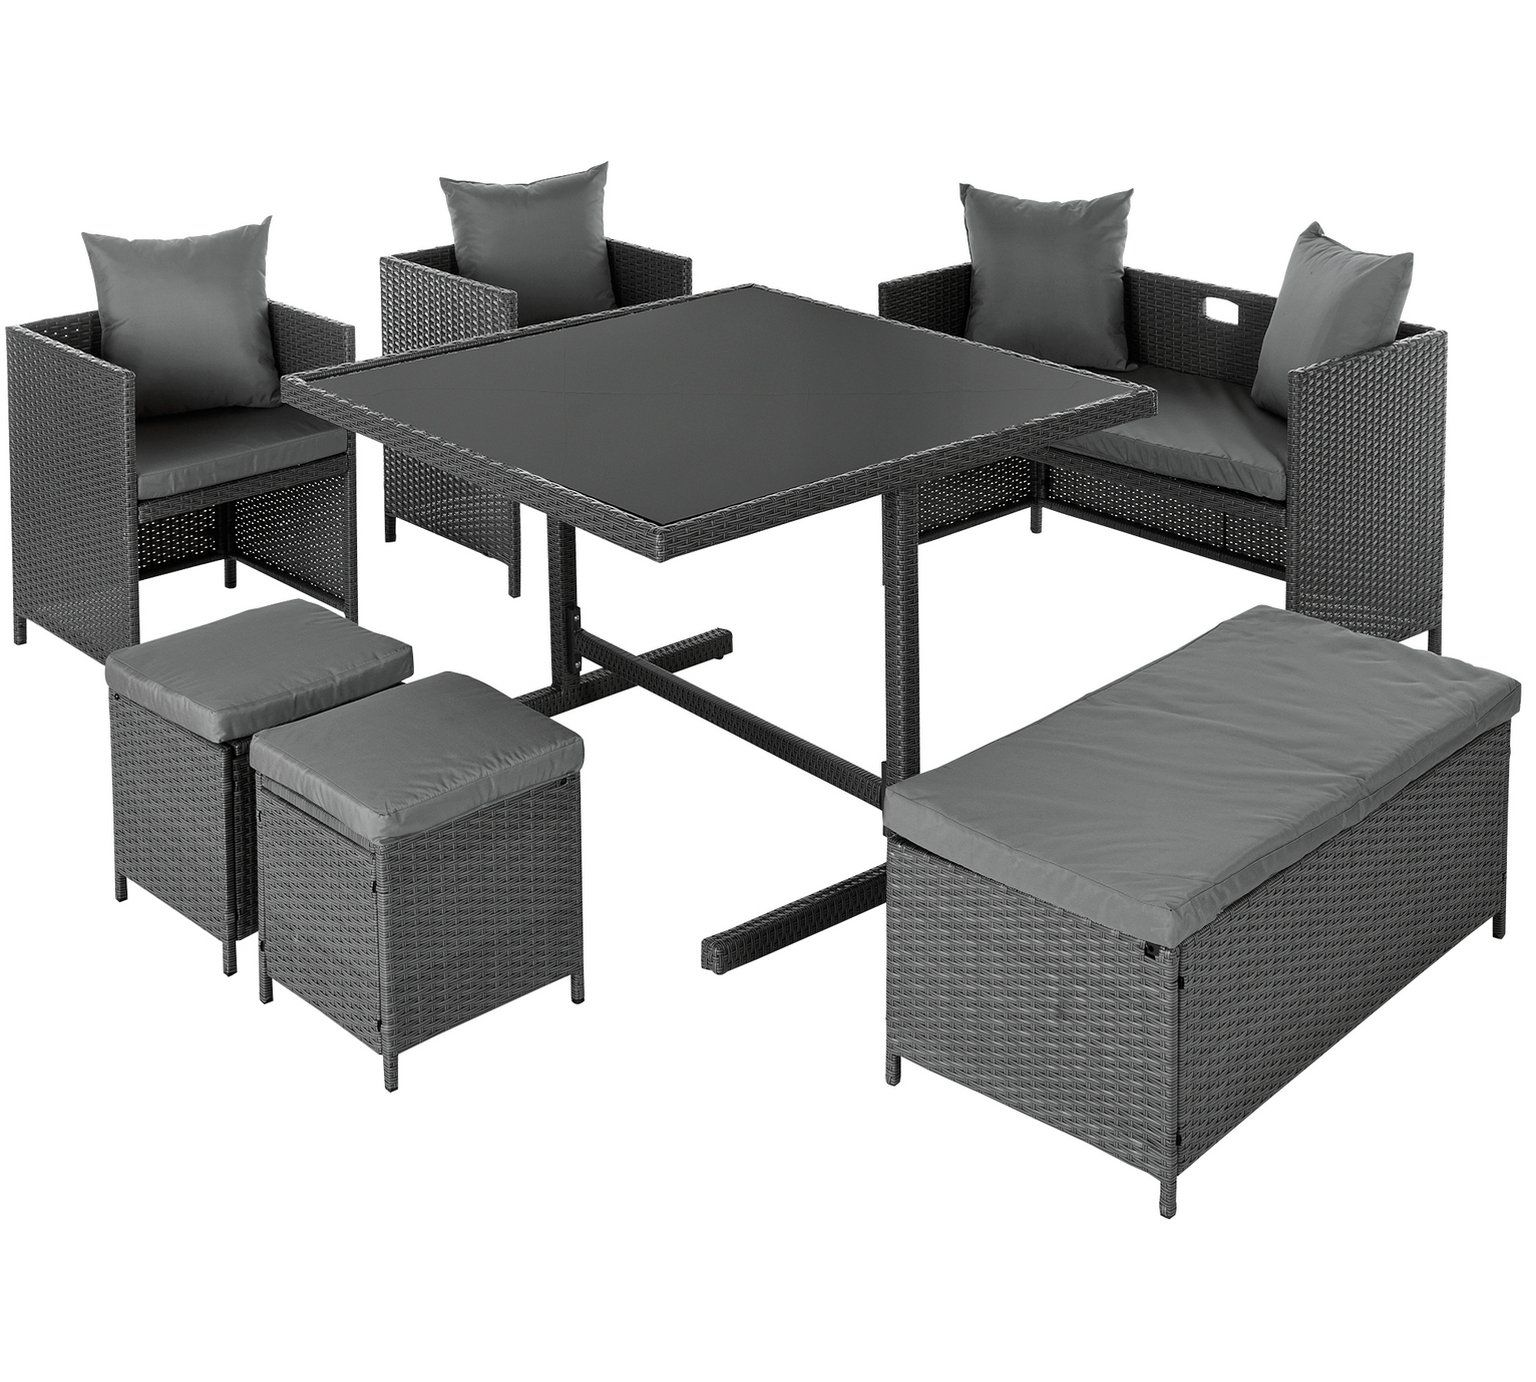 Cool Home 8 Seater Rattan Effect Patio Set Grey Garden Table Short Links Chair Design For Home Short Linksinfo